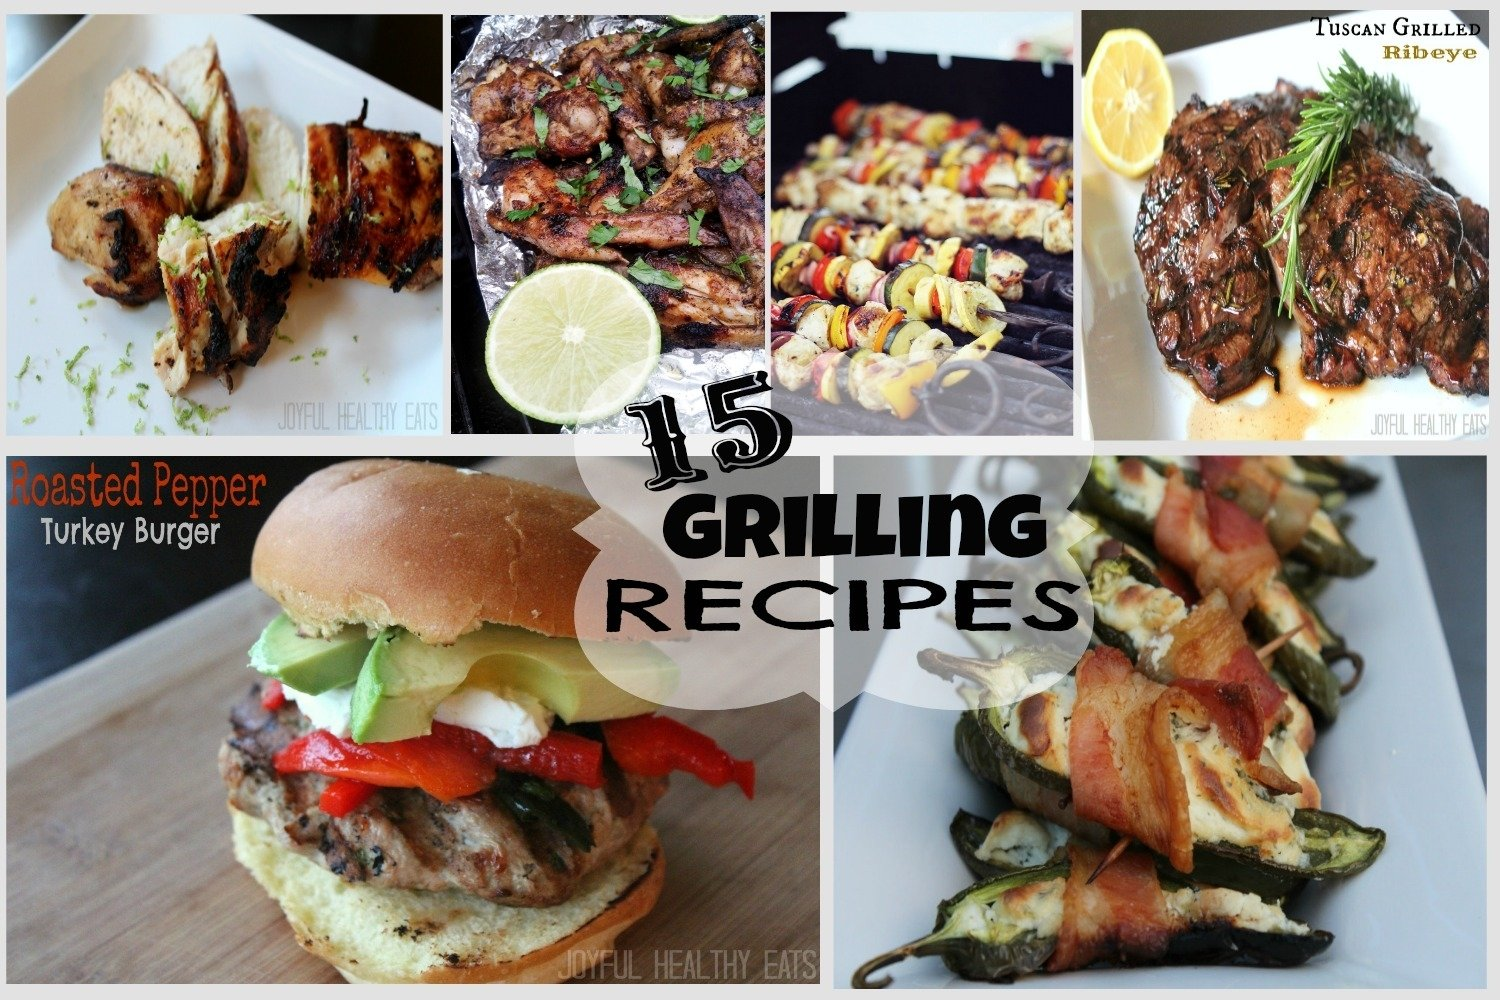 4th of july grilling recipes roundup | easy healthy recipes using